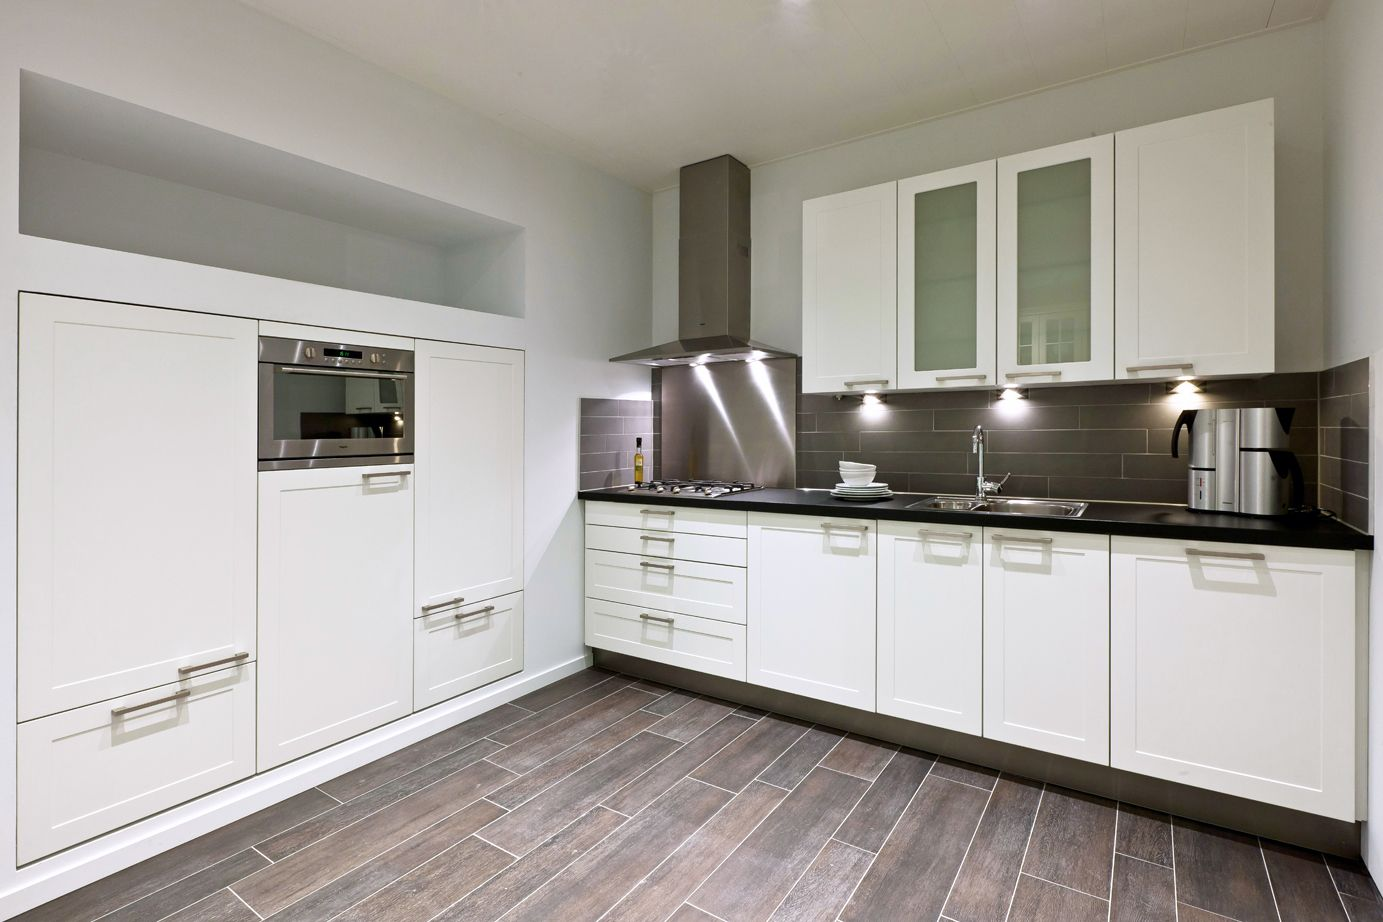 Hoekkeuken db keukens lake supurgelik kitchens